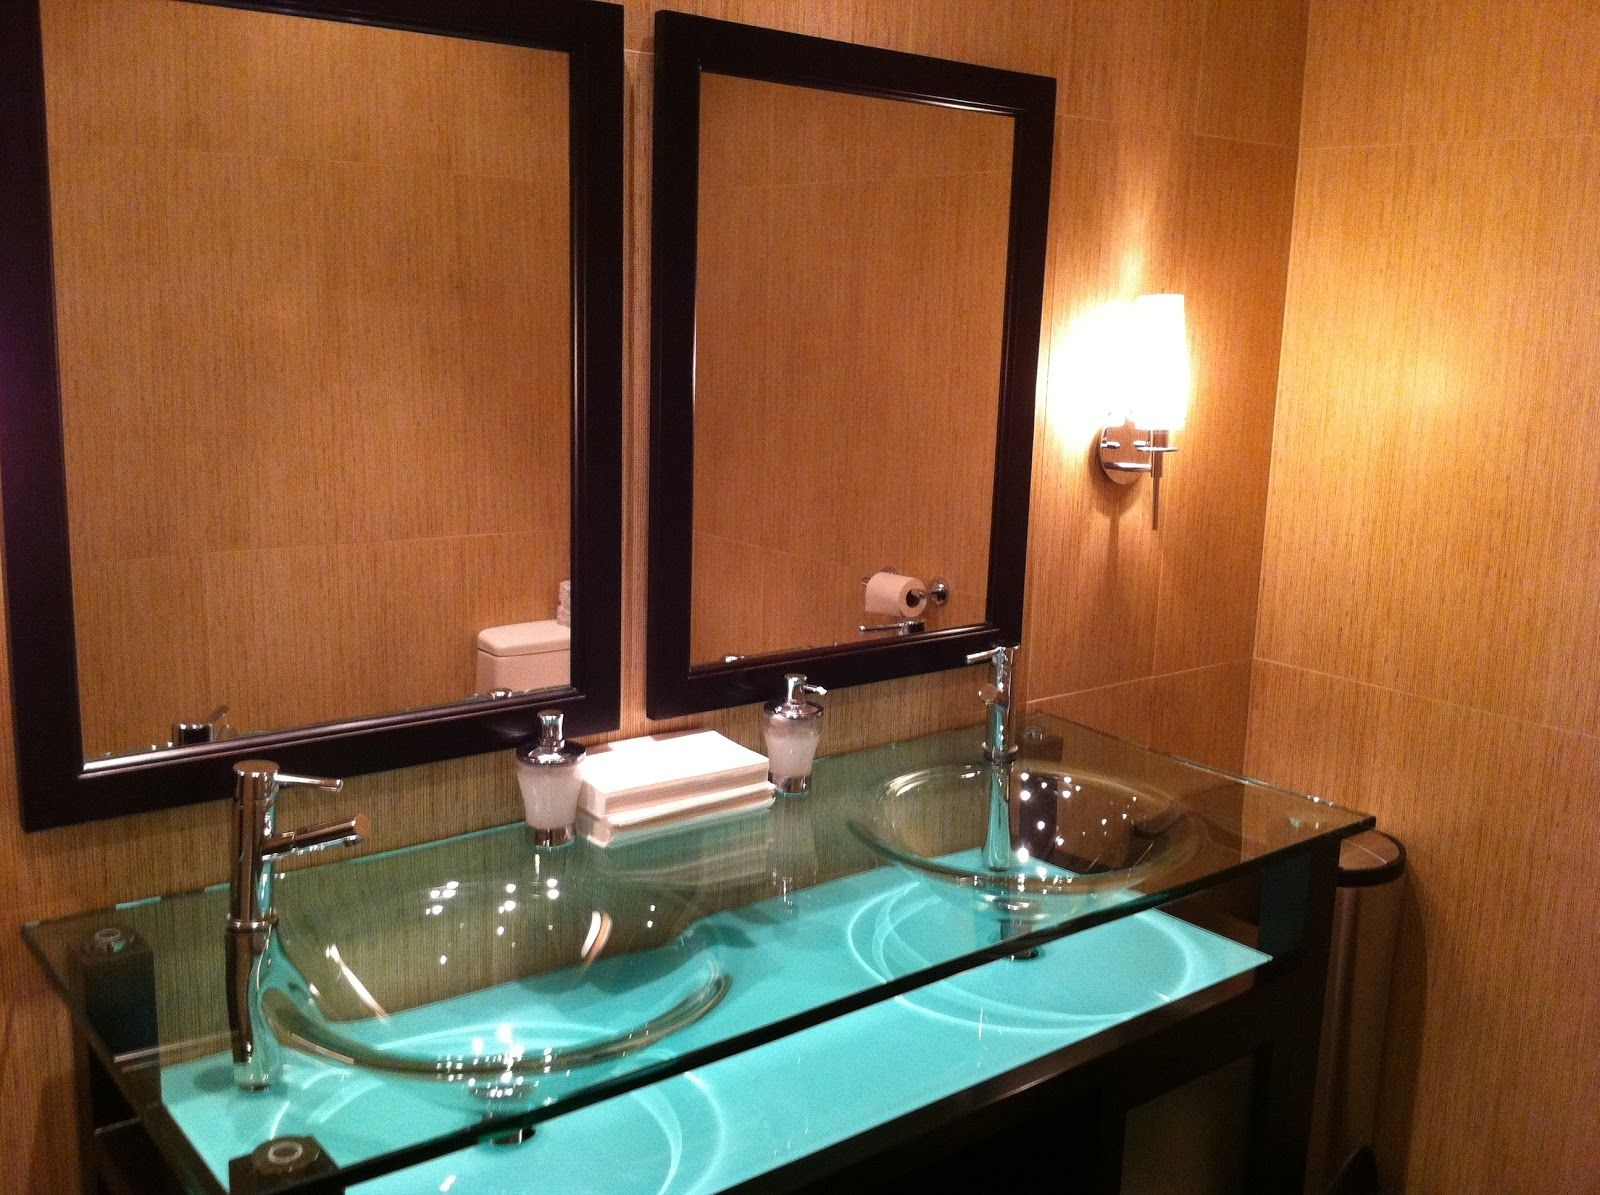 Glass Bathroom Sinks Countertops